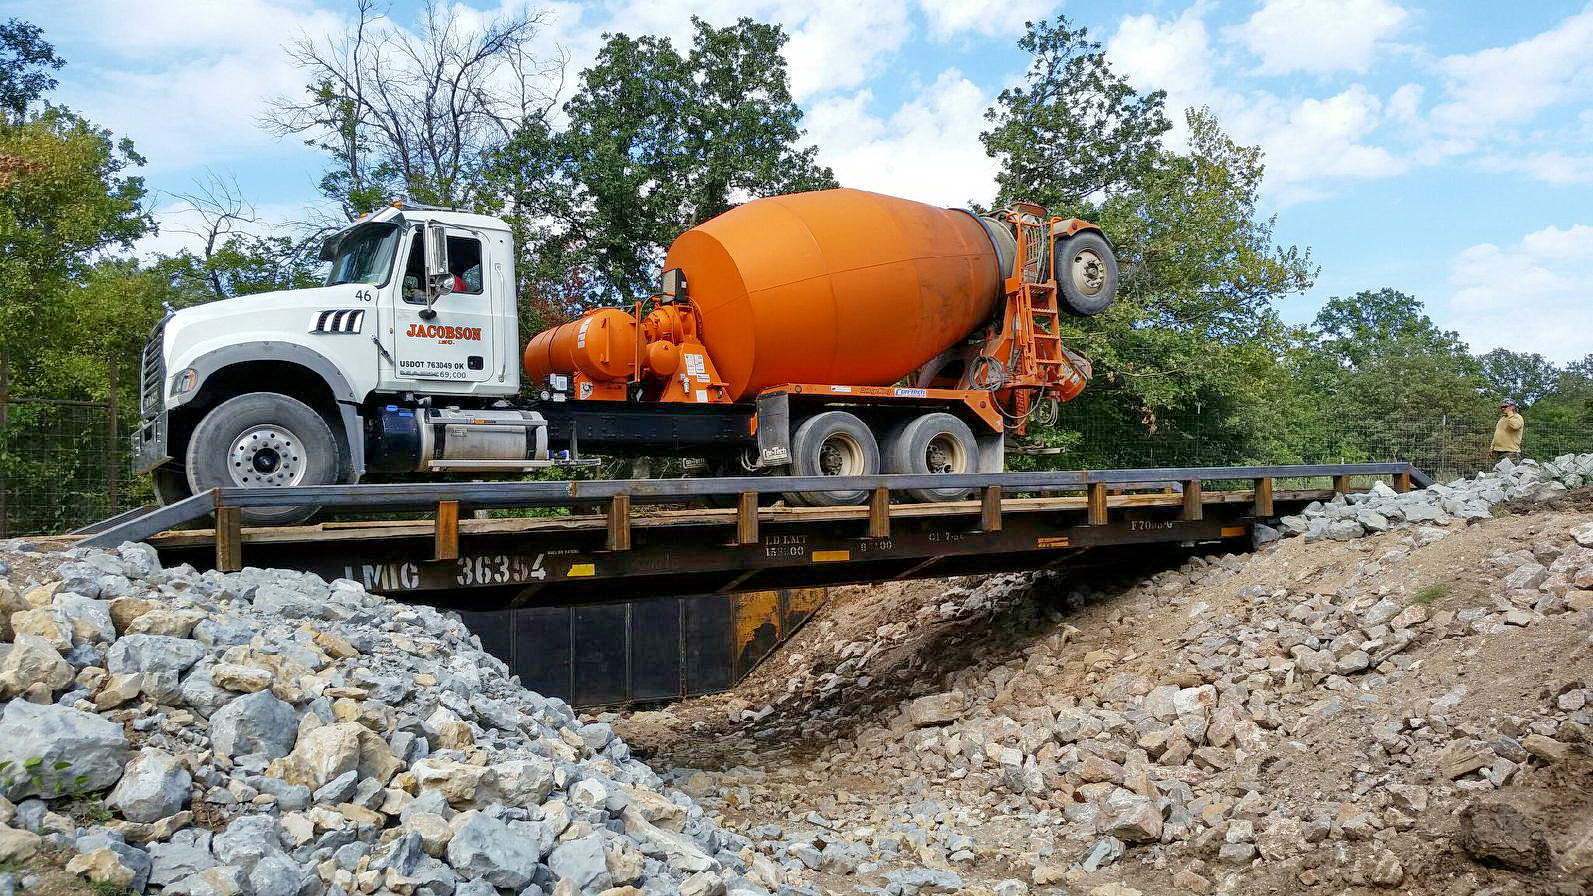 Typical bridge made from a railroad car can easily carry an 89,000-pound ready-mix truck.